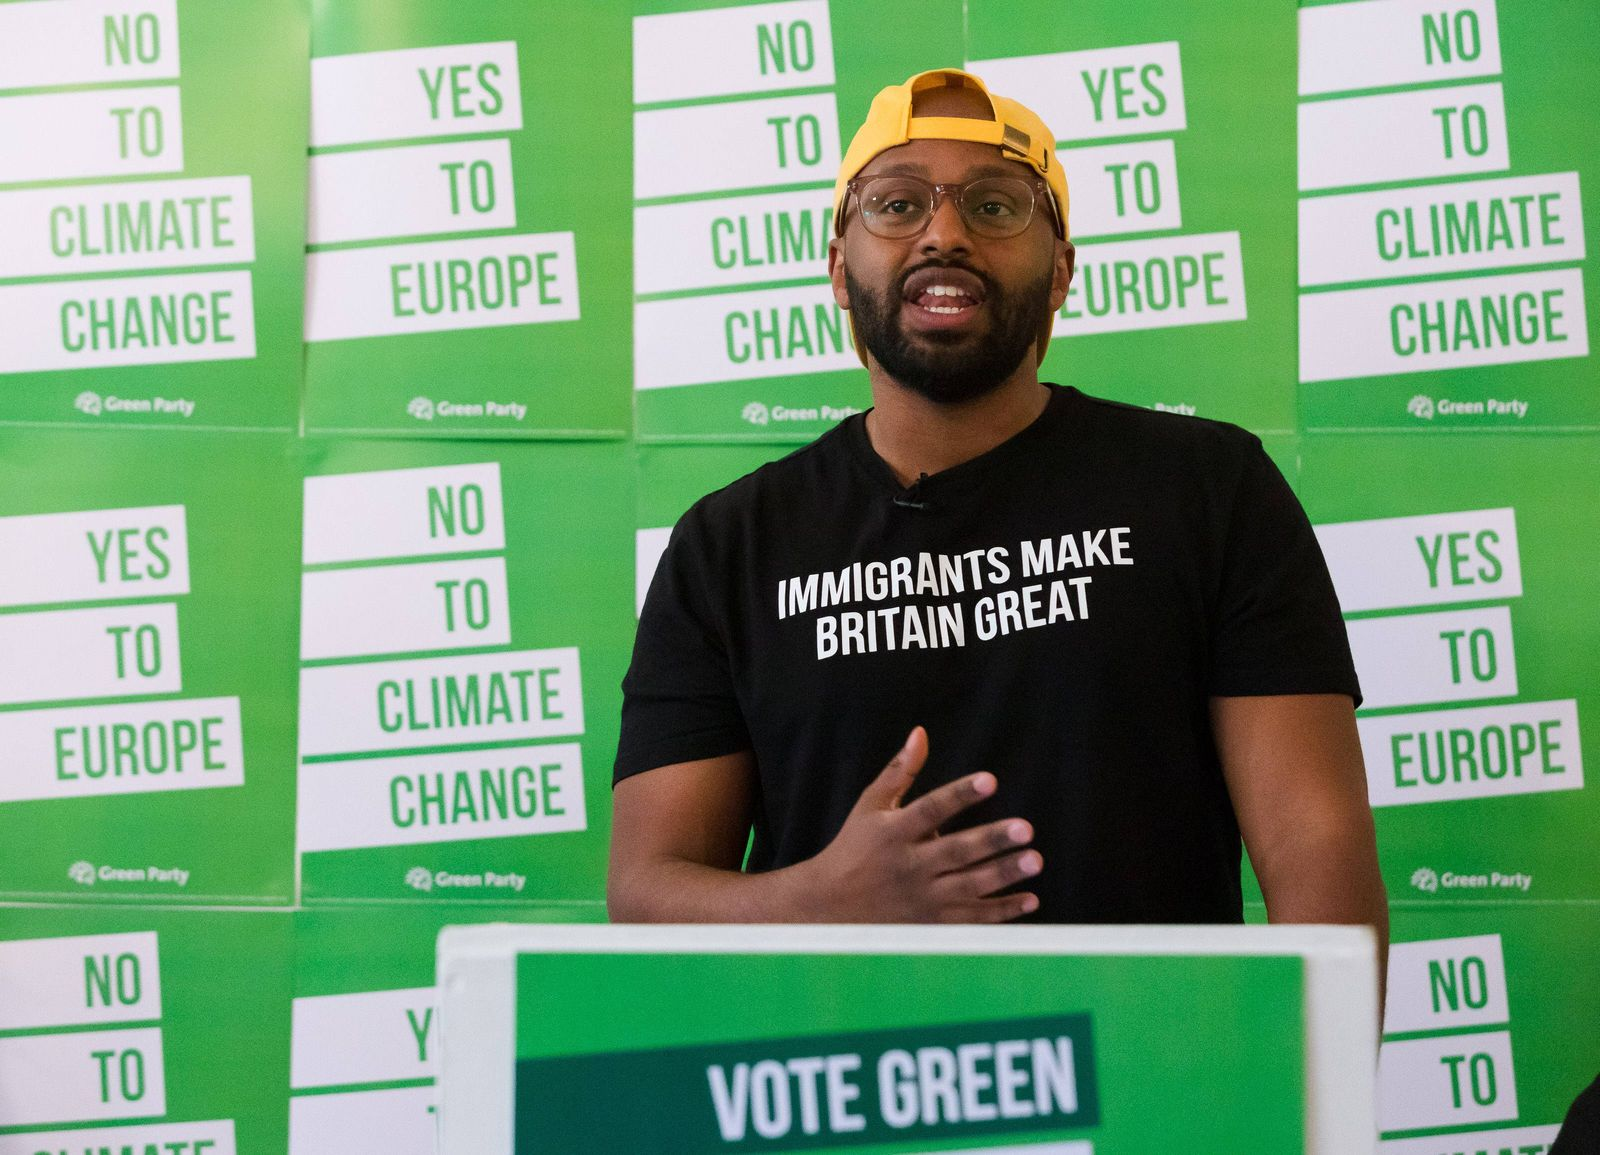 May 8 2019 London London UK London UK MEP Green Party candidate for Yorkshire and Humber